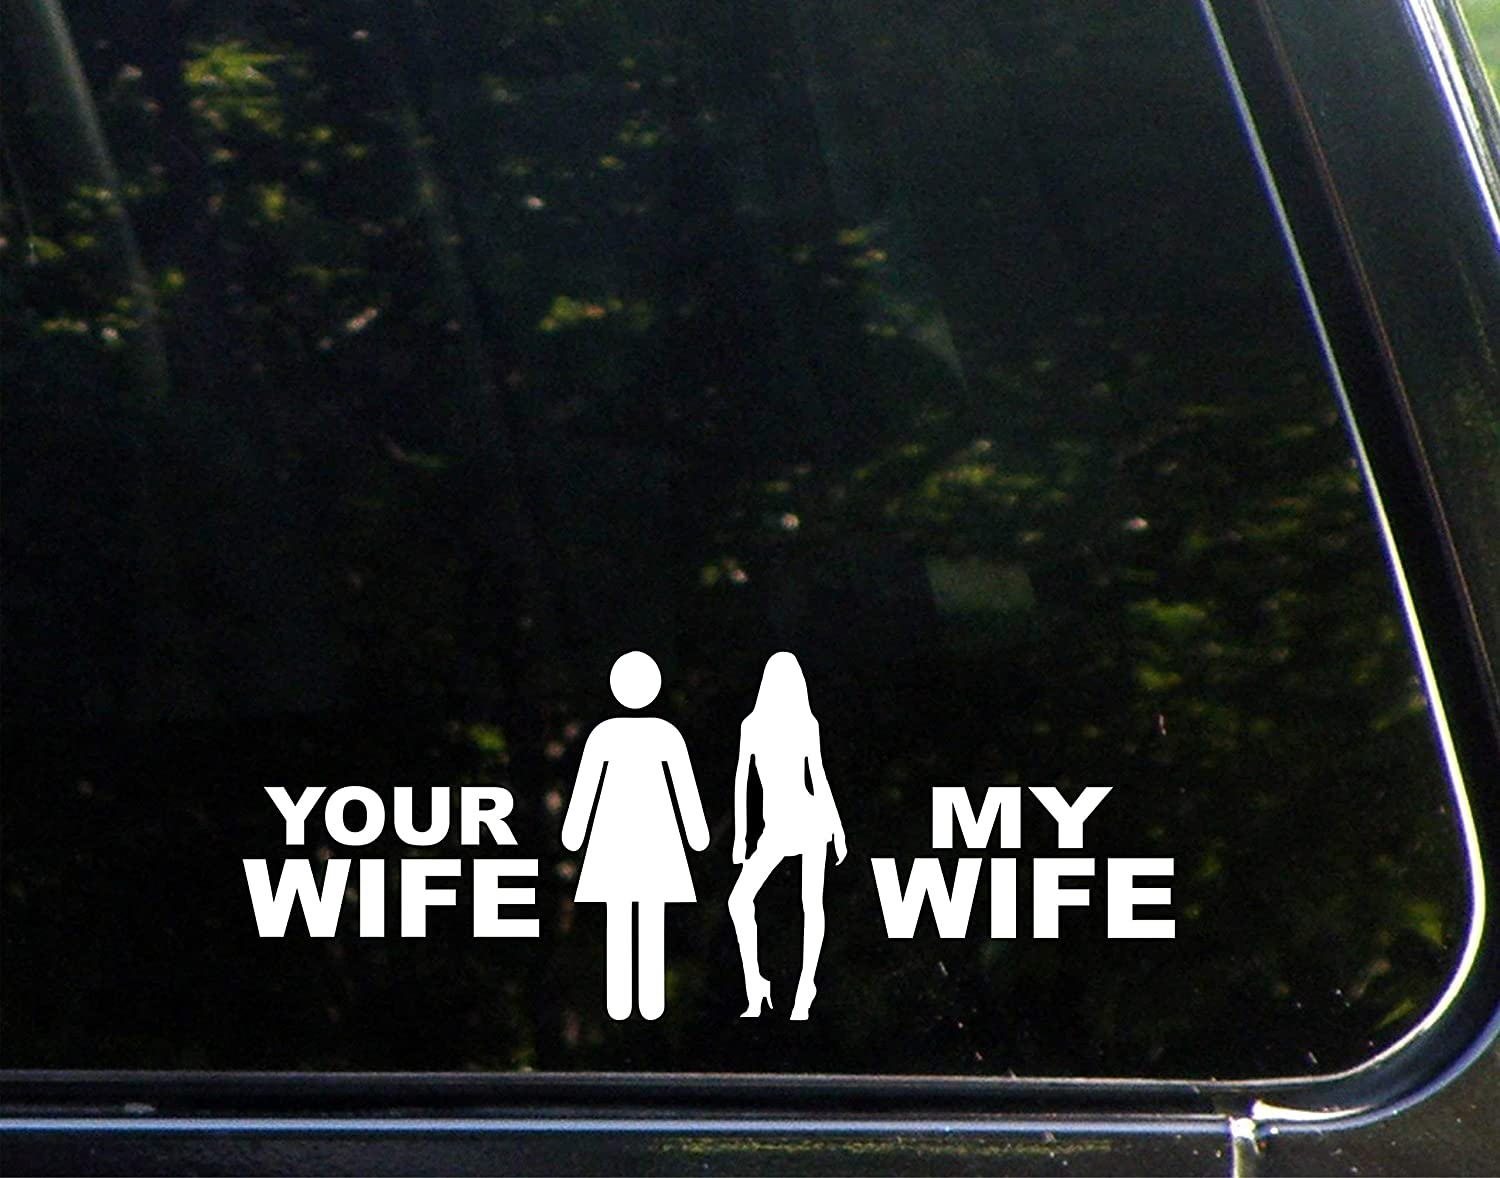 """Diamond Graphics Your Wife/My Wife (9"""" x 3-1/2"""") Die Cut Decal/Bumper Sticker for Windows, Cars, Trucks, Laptops, Etc."""